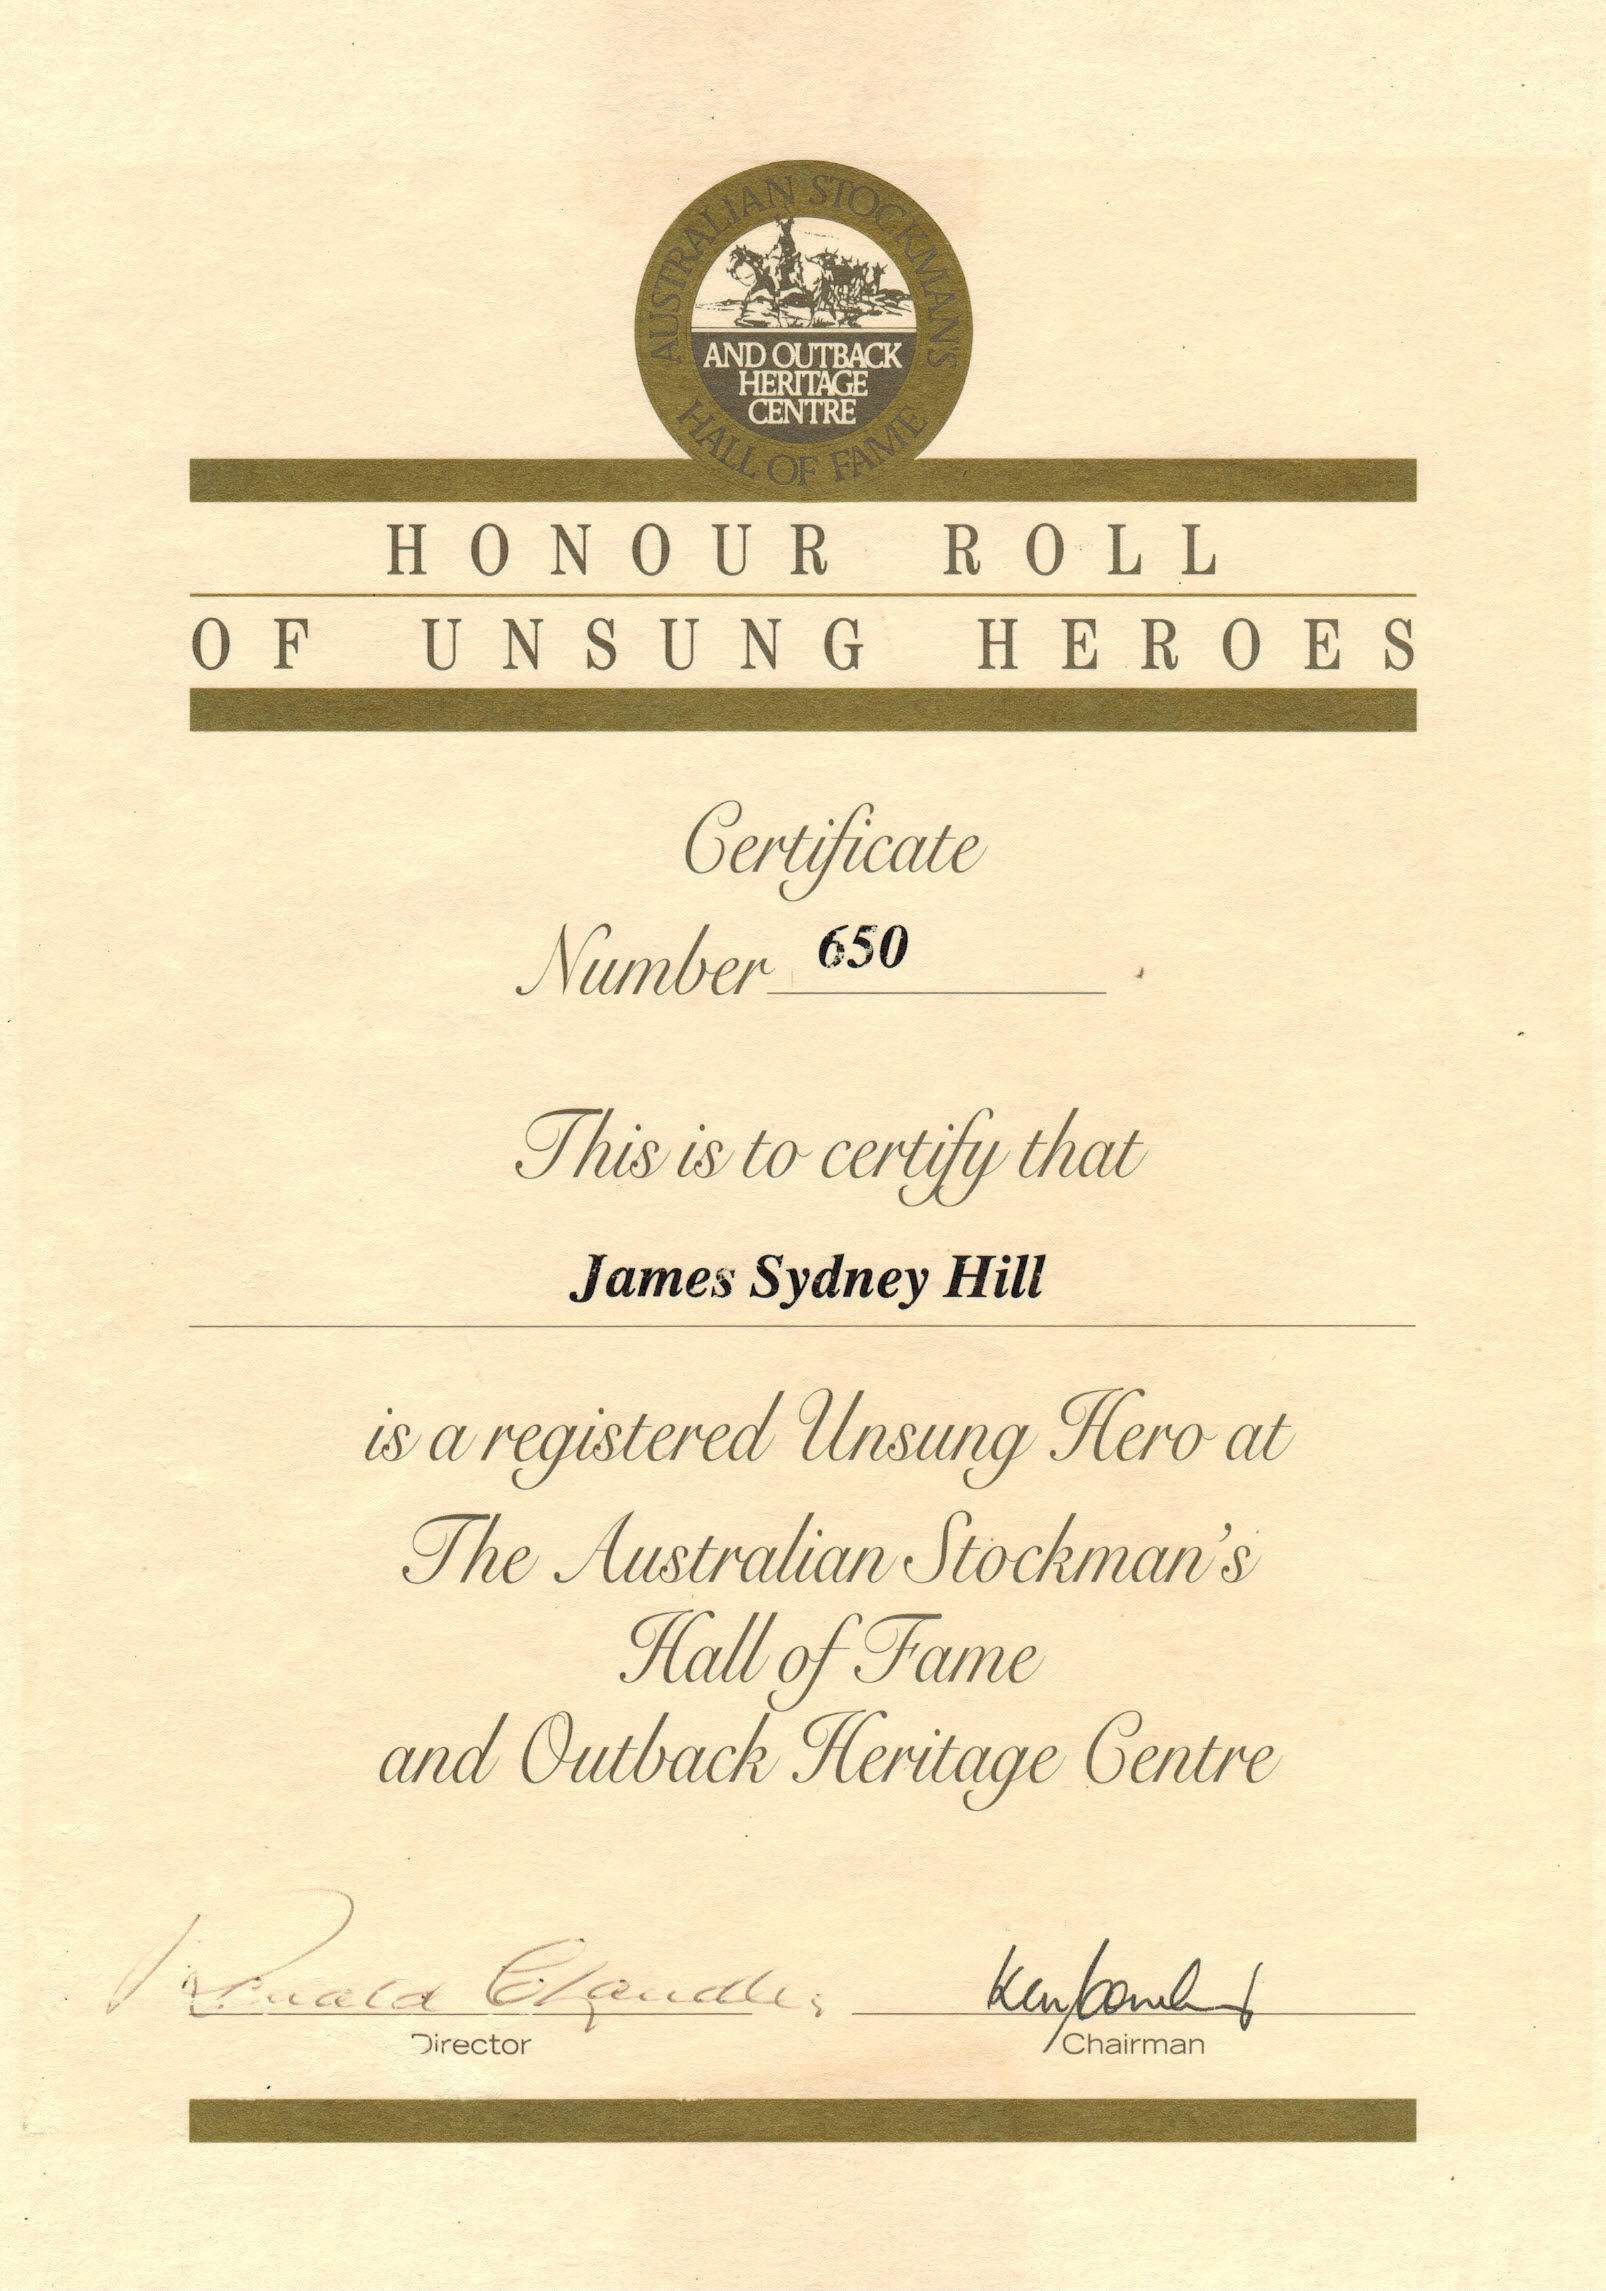 Jim Hill's certificate to the Stockmans Hall of Fame.